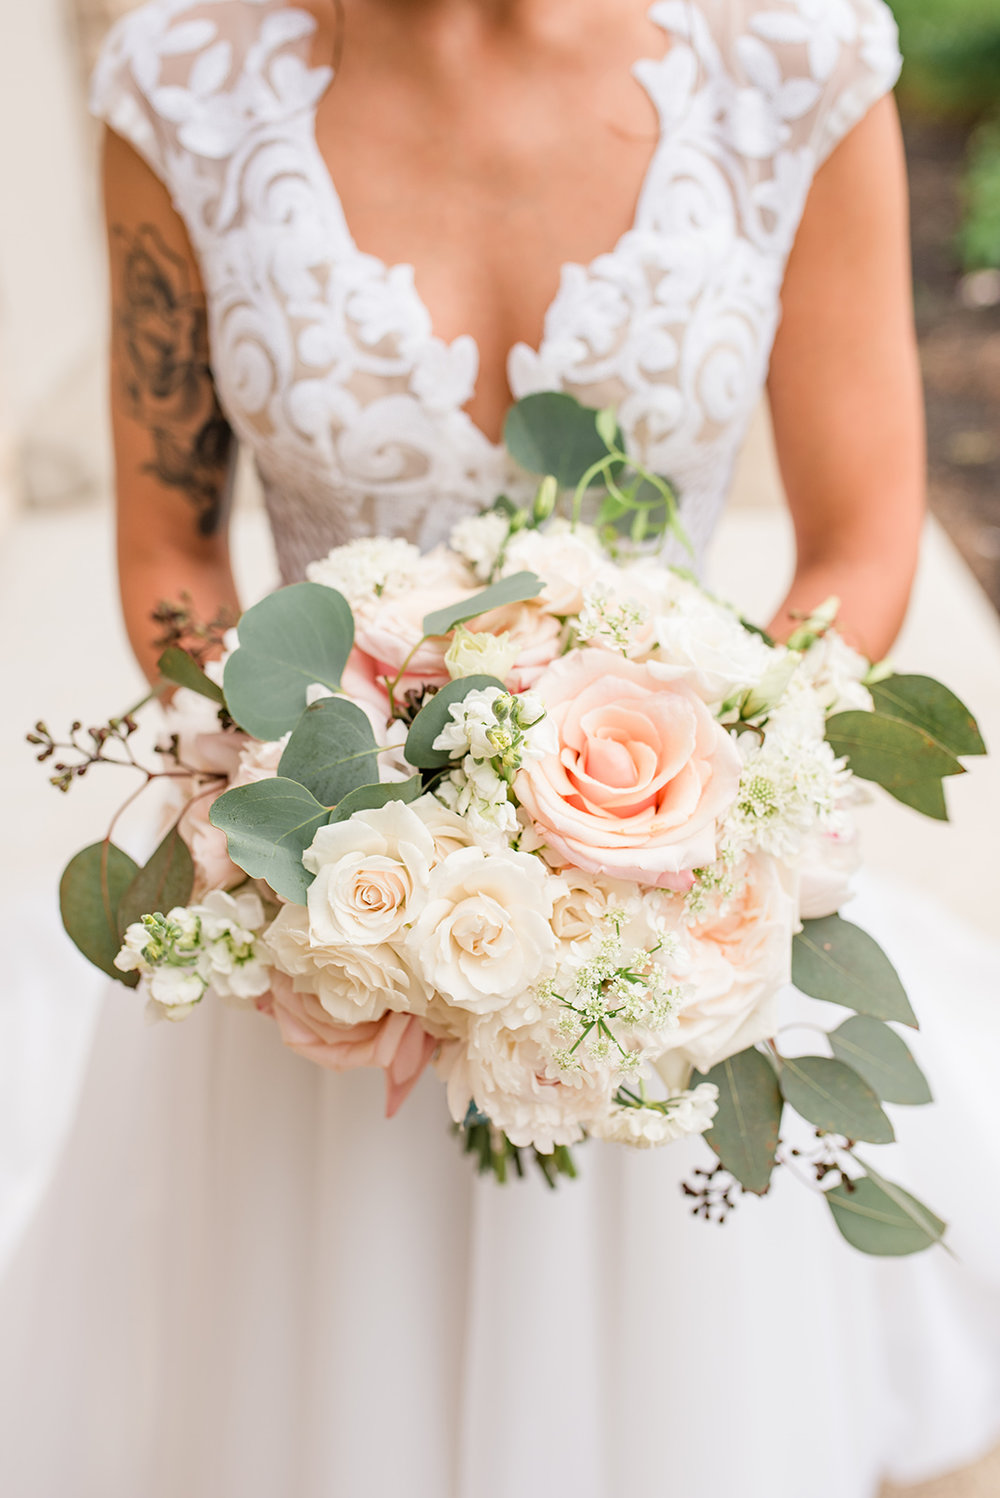 Scotland Run Wedding, Bride, Bridal Bouquet, White and Blush Bouquet, Greenery, Hailey Page Dress, Lace Dress, Josiah & Steph Photography